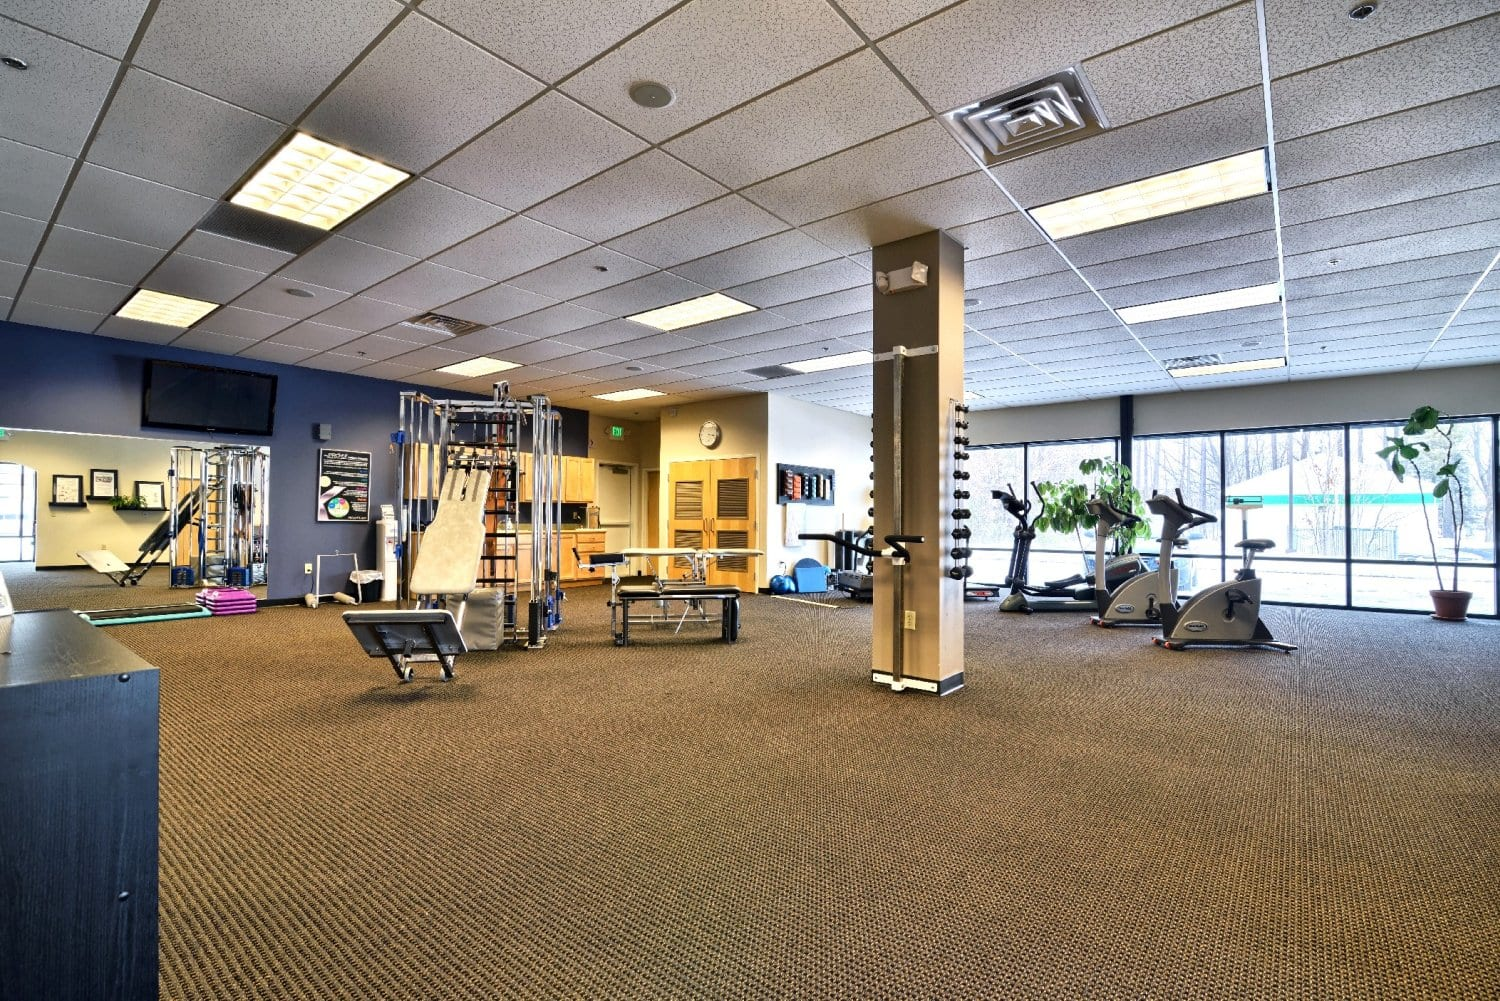 This is an image of weights and equipment used at our physical therapy clinic in Somersworth, New Hampshire.